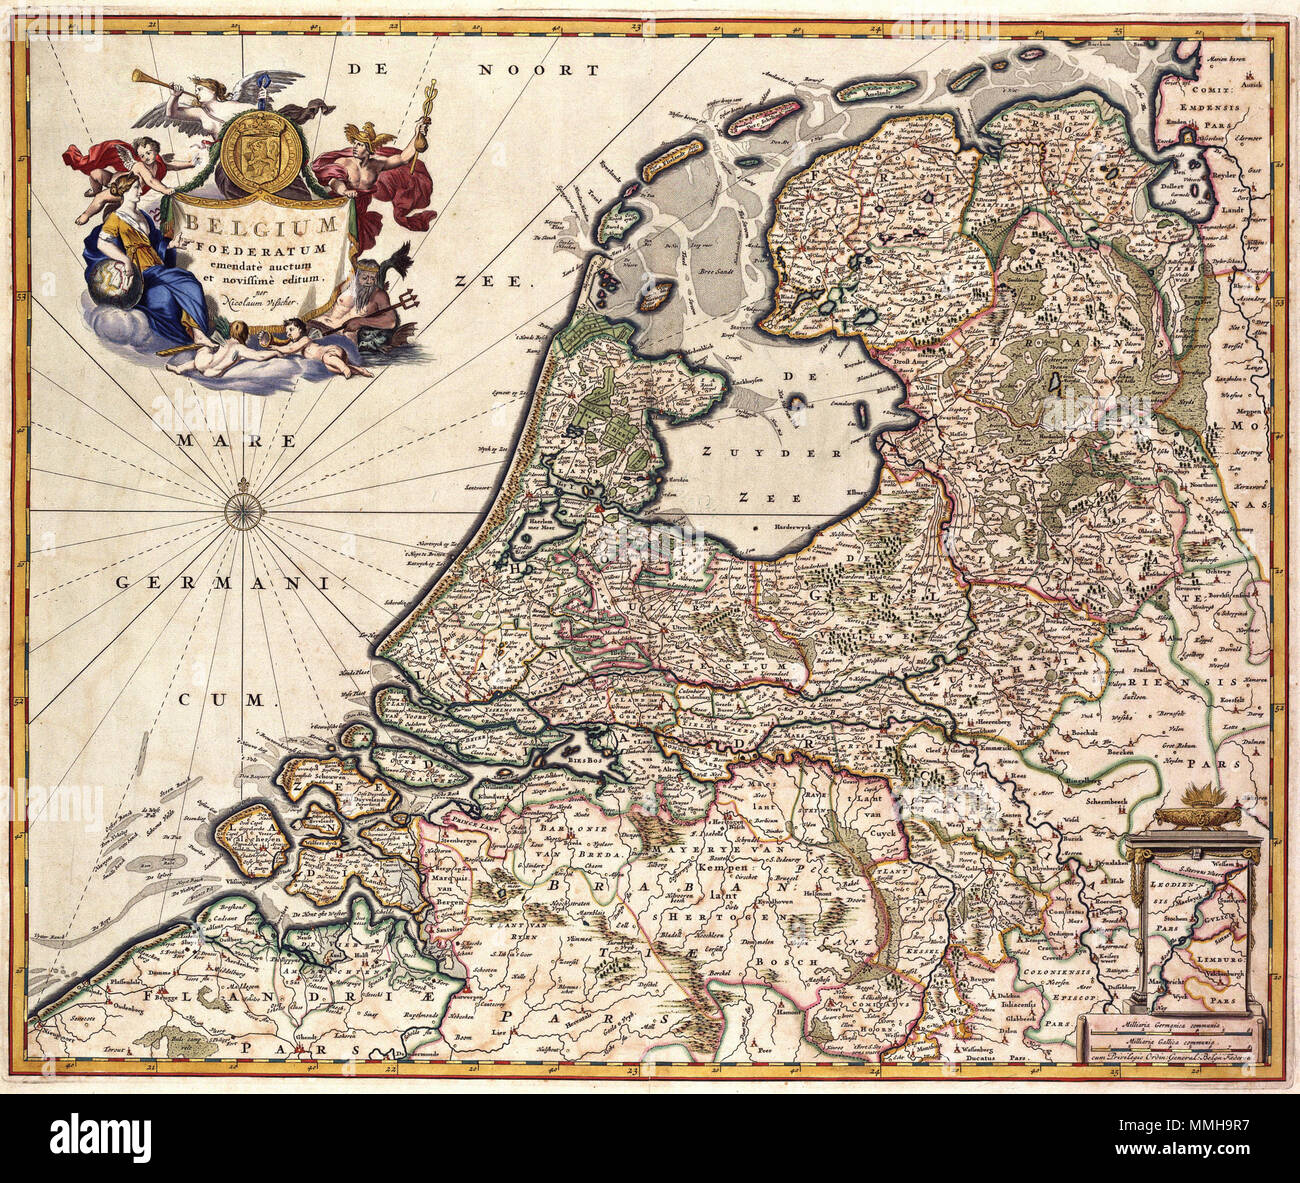 Limburg Map Stock Photos Limburg Map Stock Images Alamy